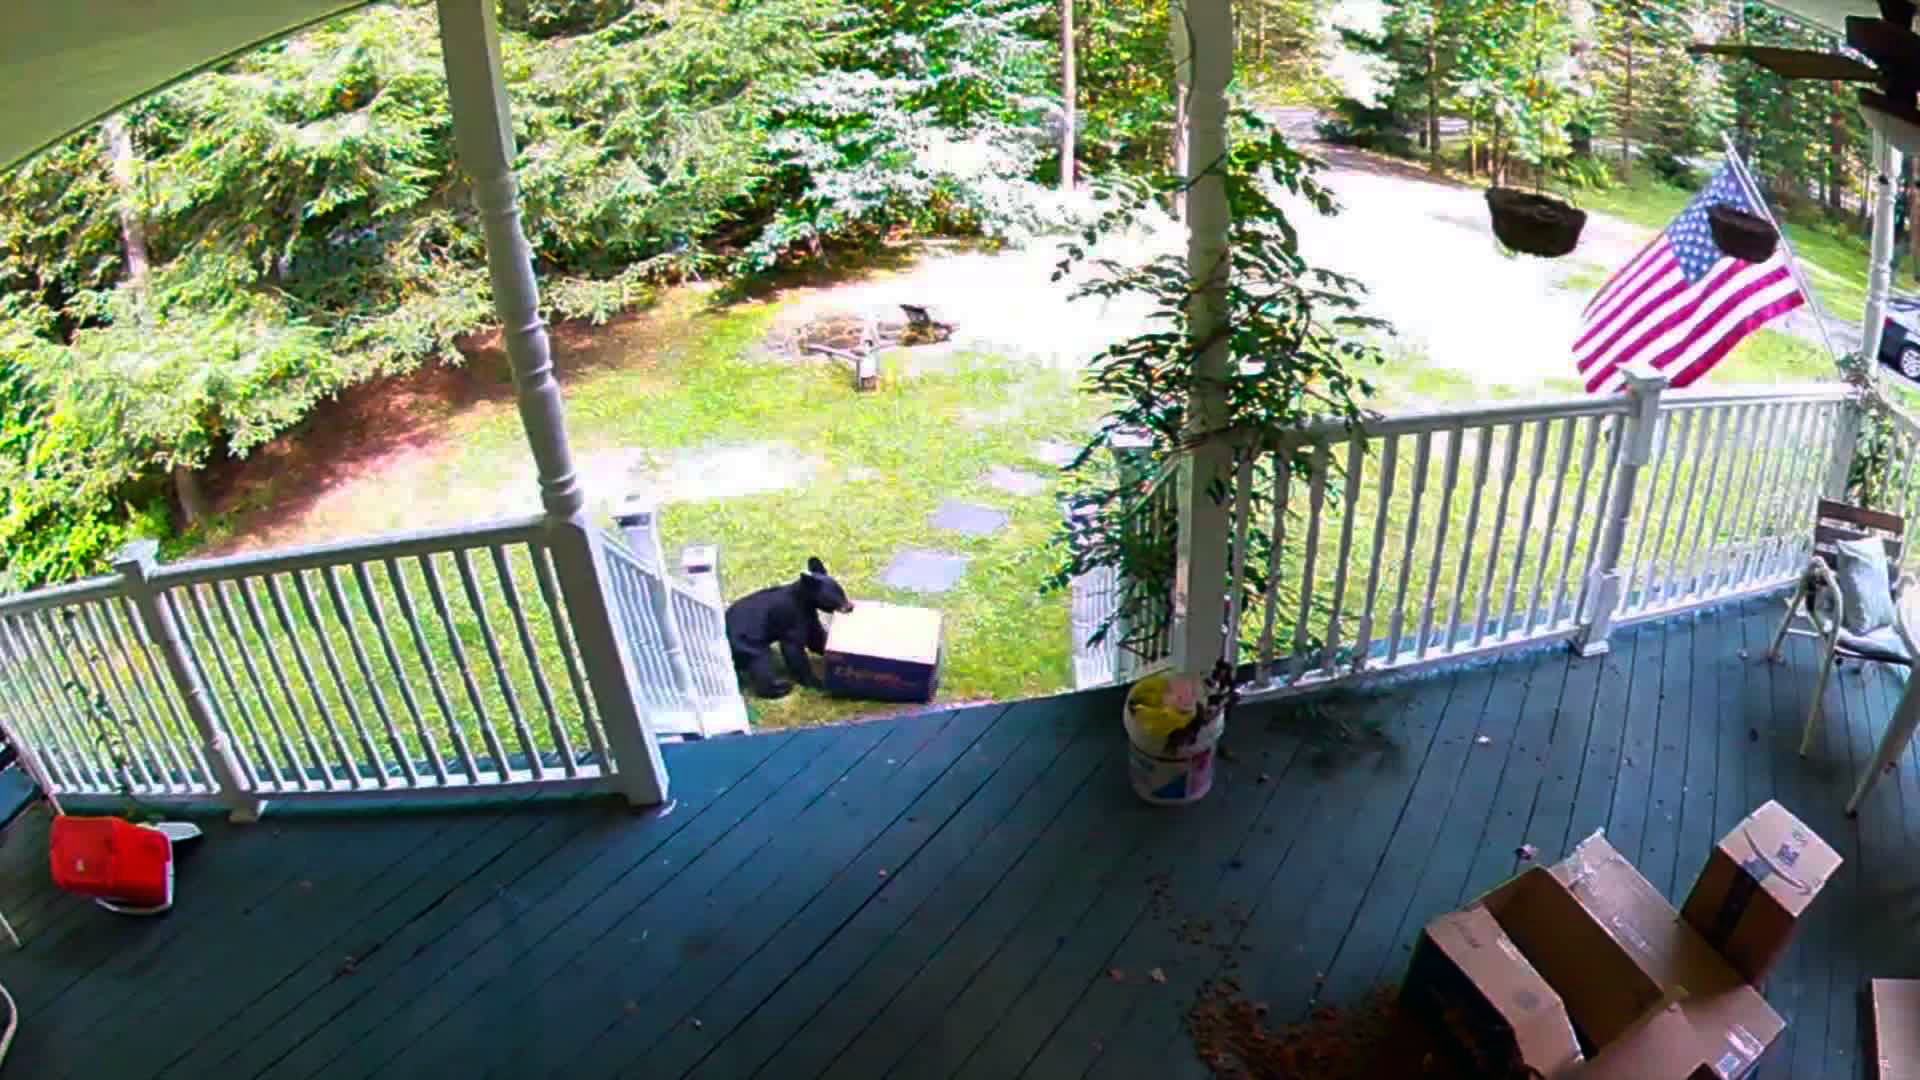 Bear bandit caught stealing dog food delivery - CNN Video